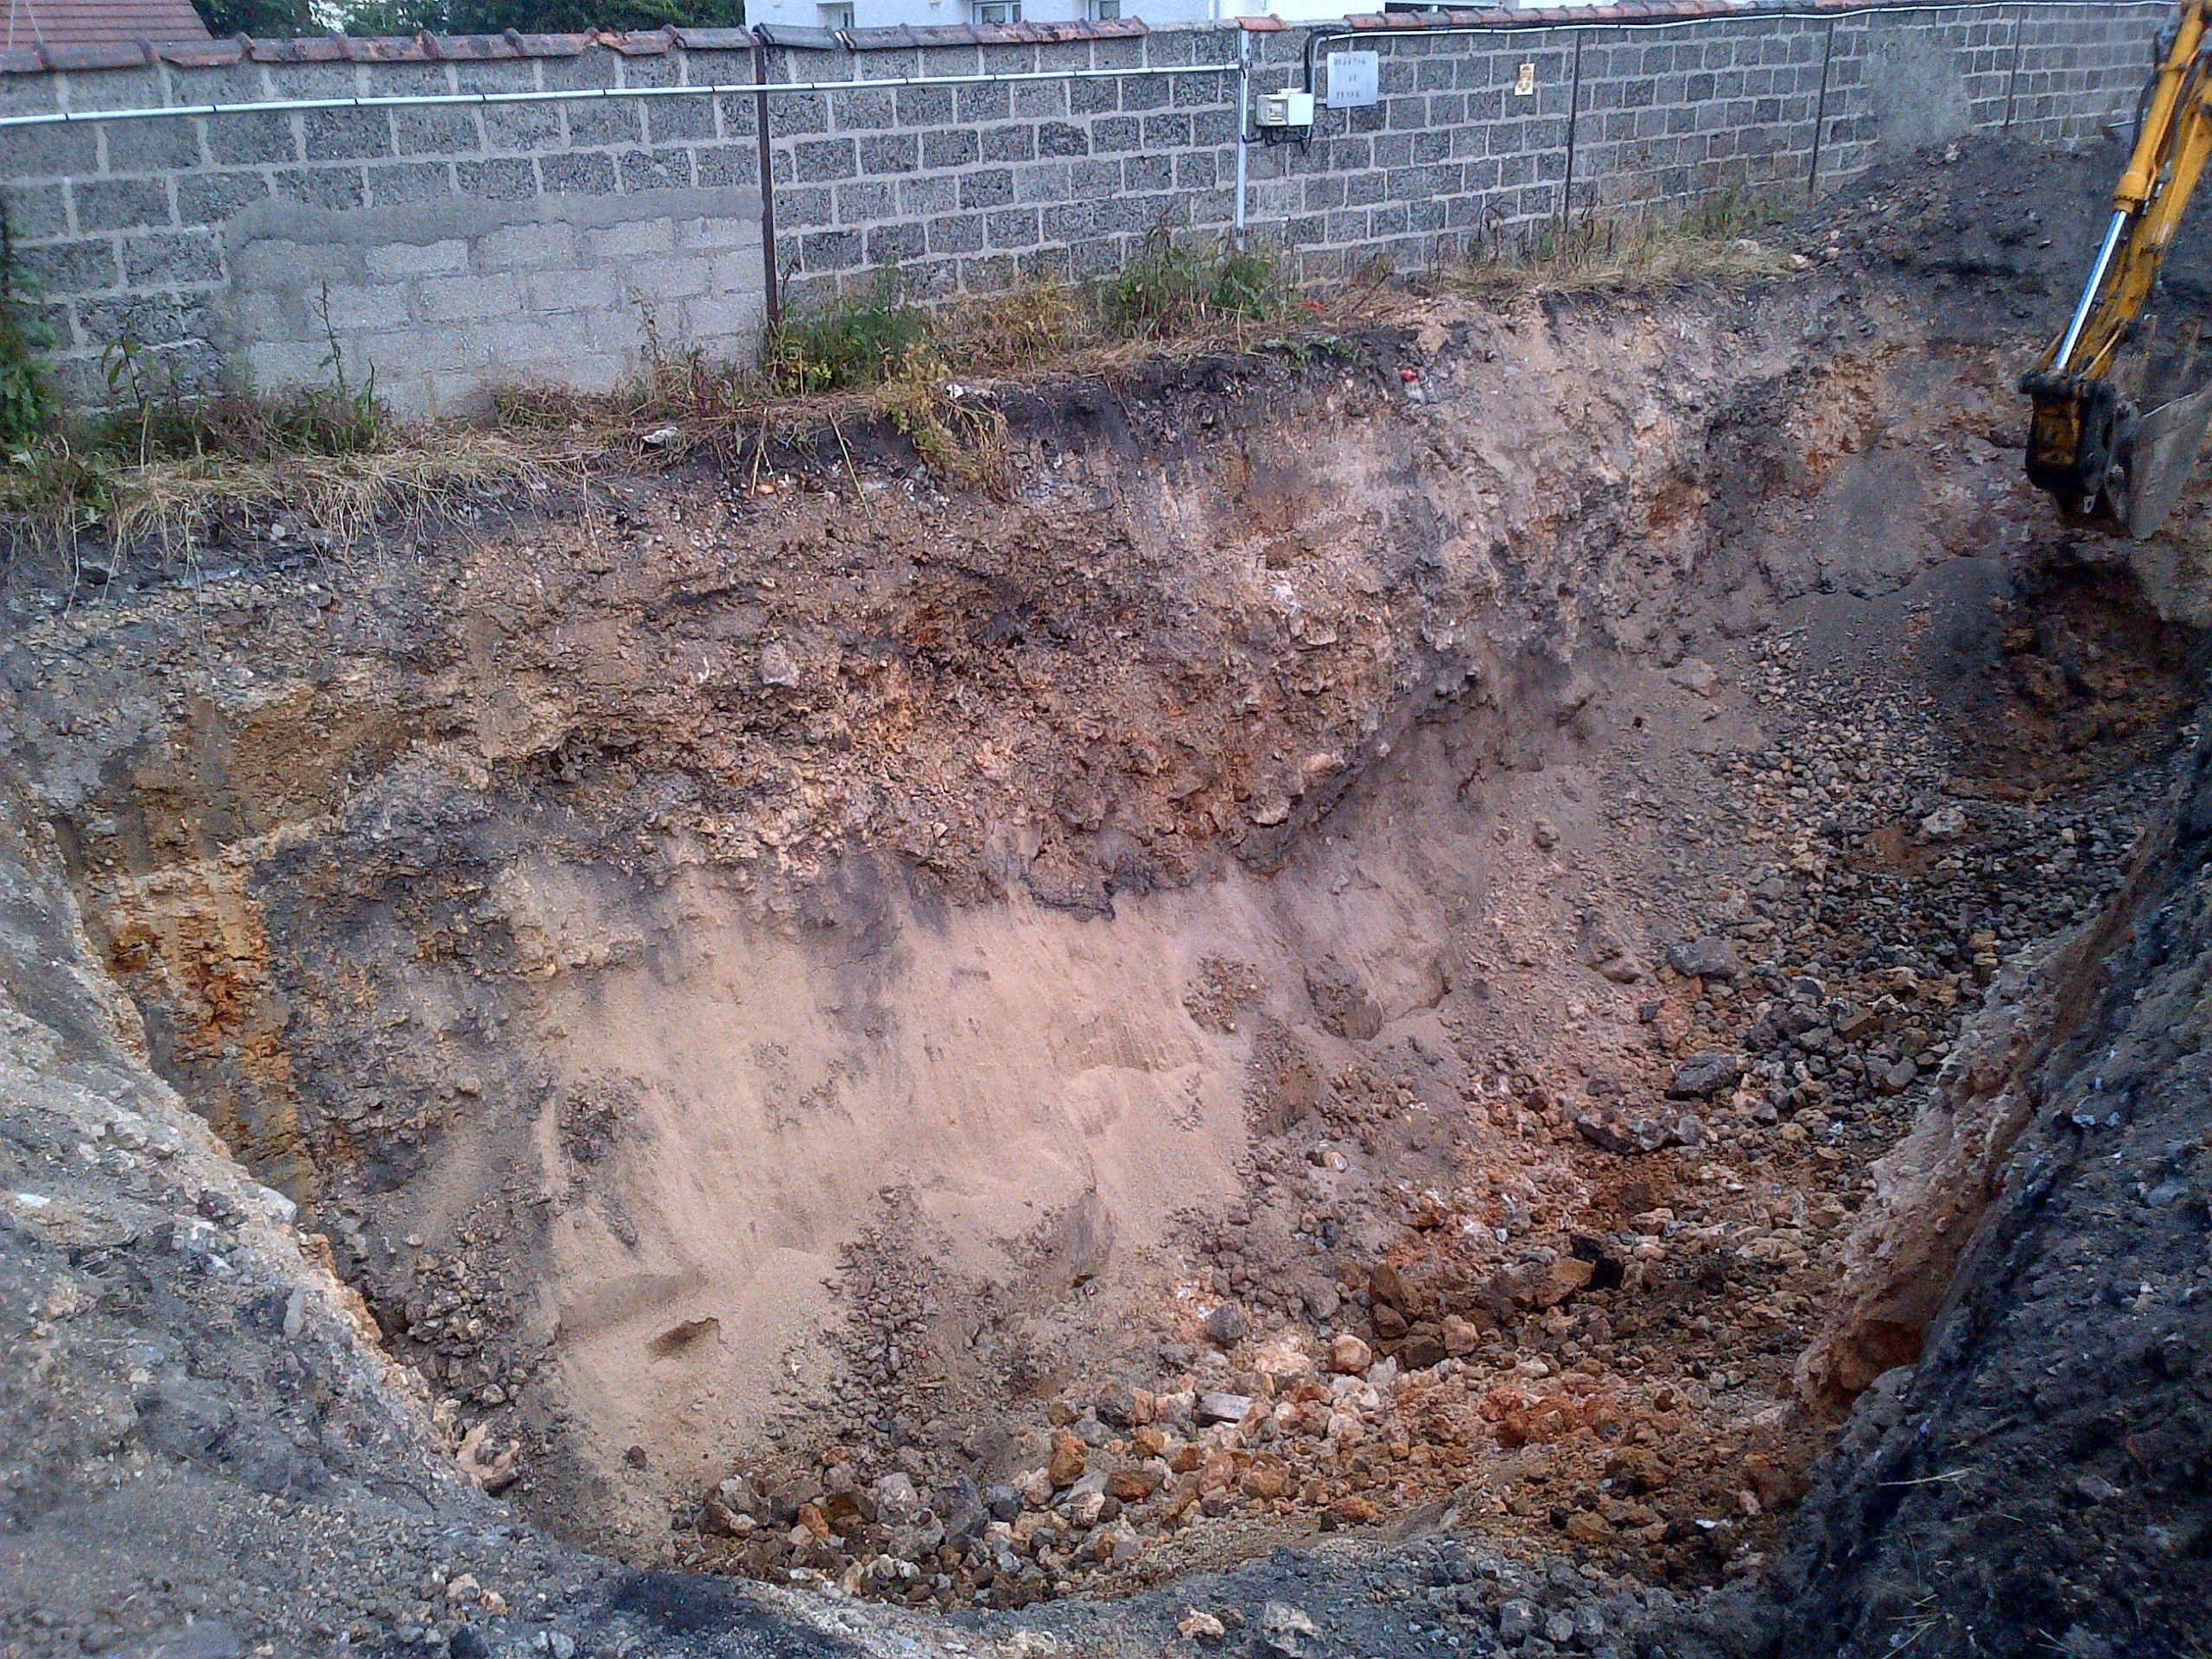 Digging of contaminated land.